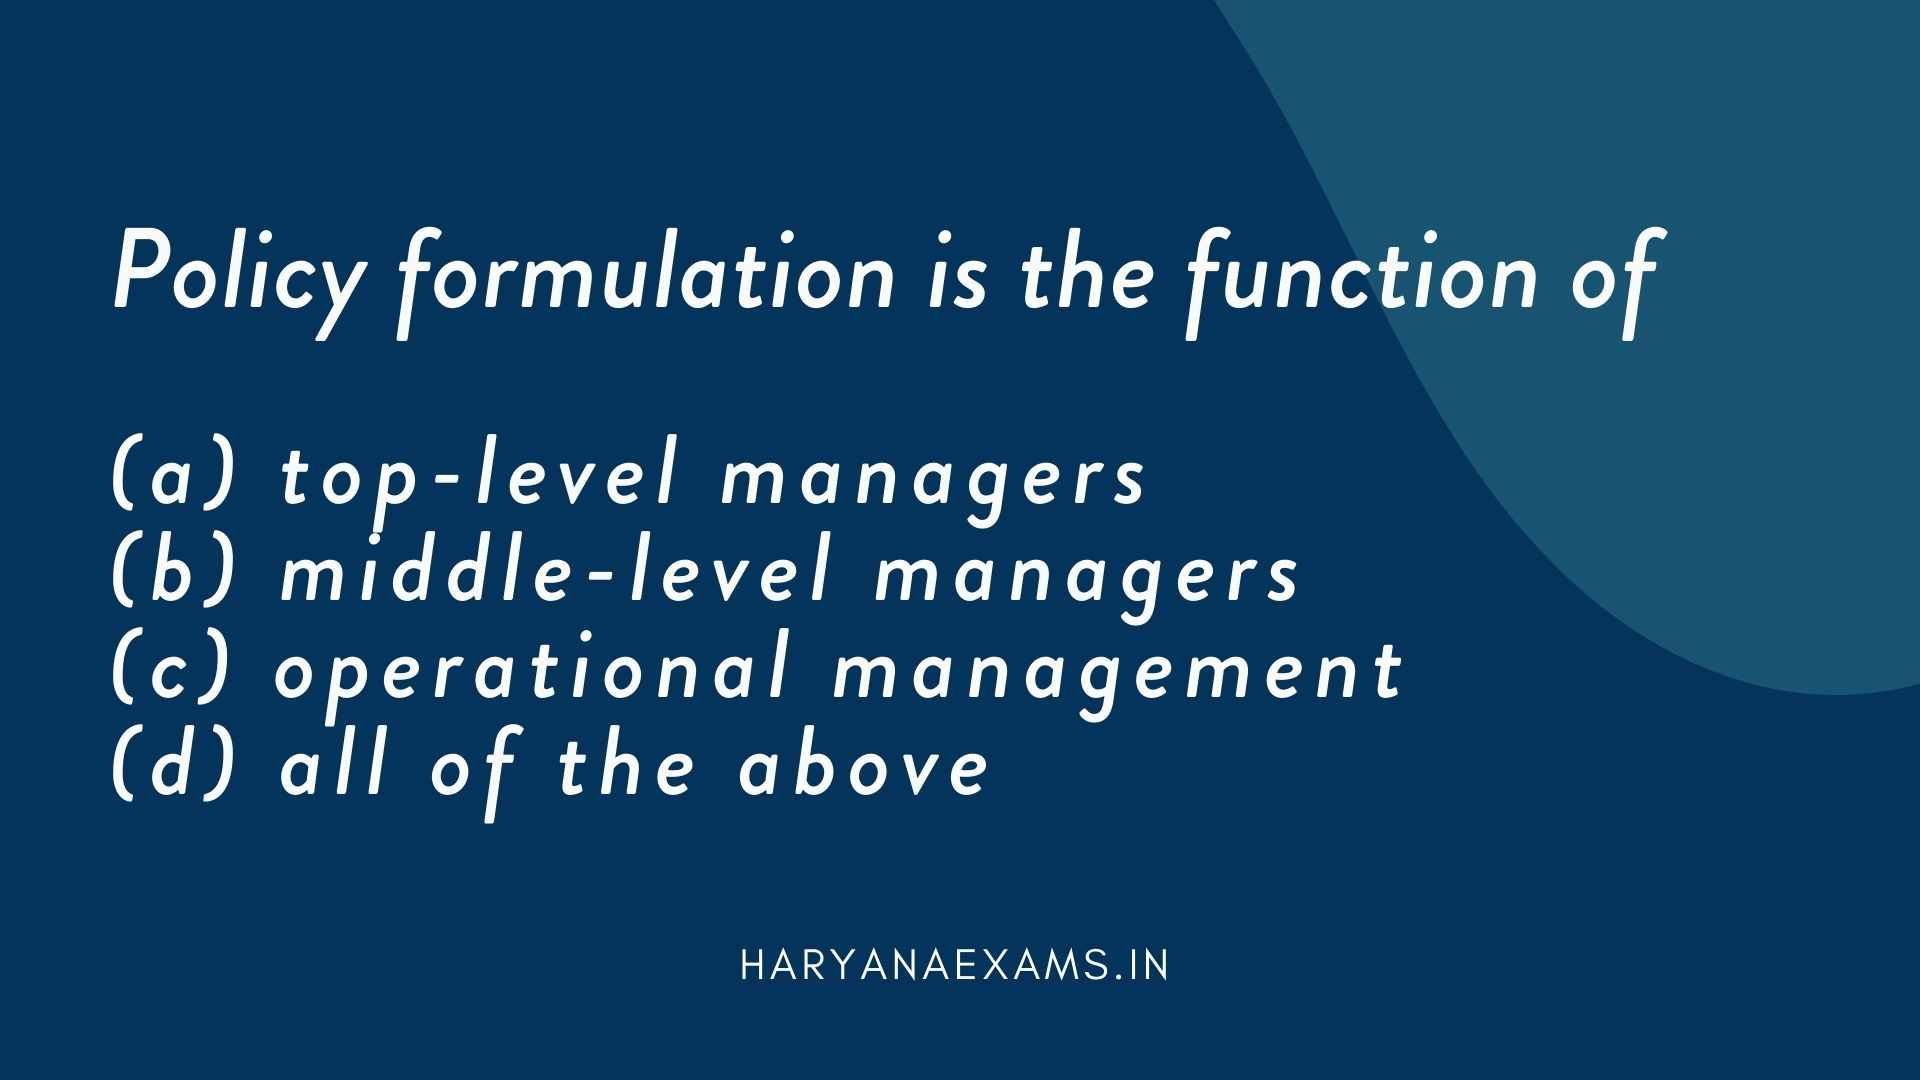 Policy formulation is the function of   (a) top-level managers   (b) middle-level managers   (c) operational management   (d) all of the above